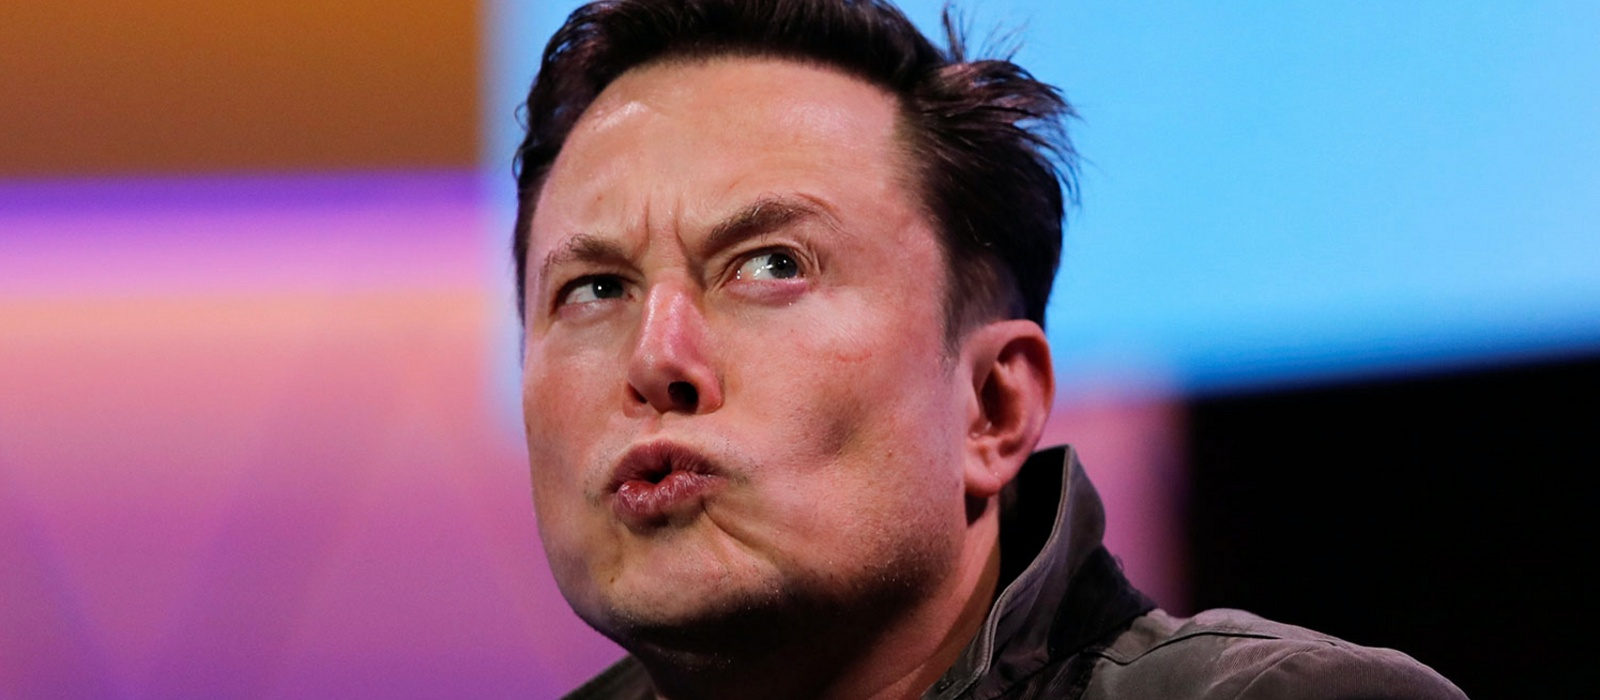 Elon Musk told which games he considers the best for Halloween